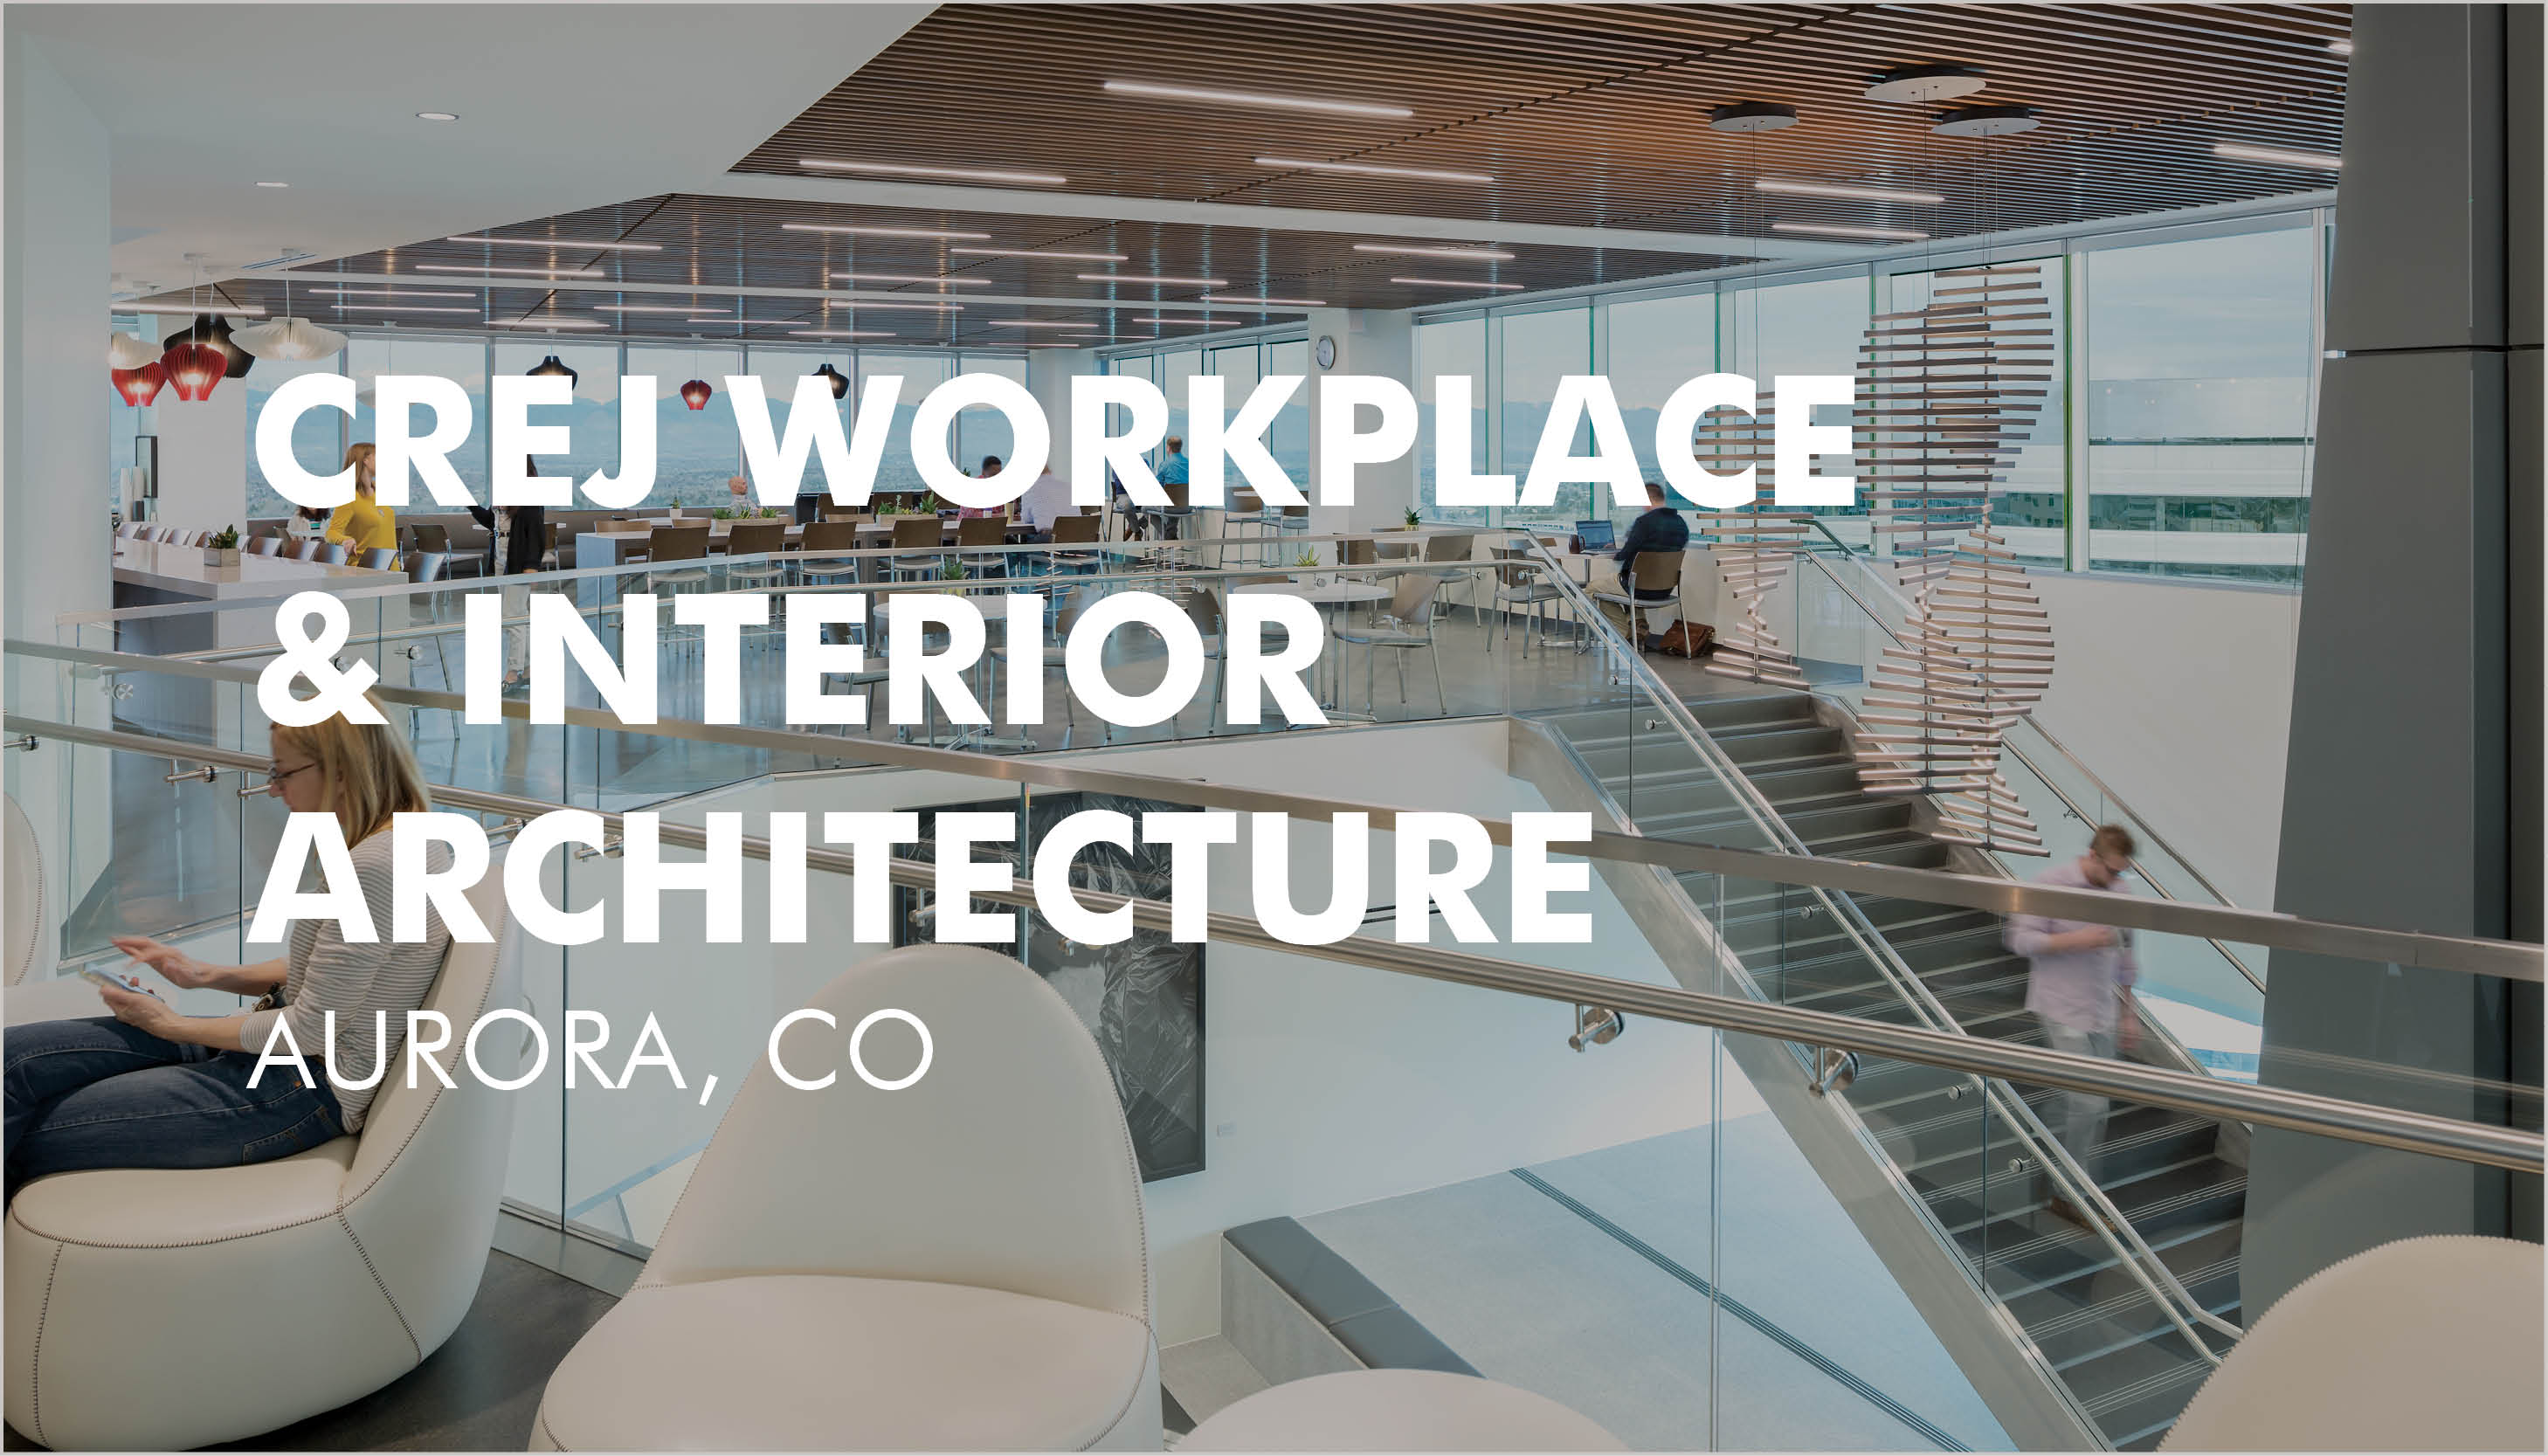 CREJ Workplace + Interior Architecture Conference + Expo 2019 Image